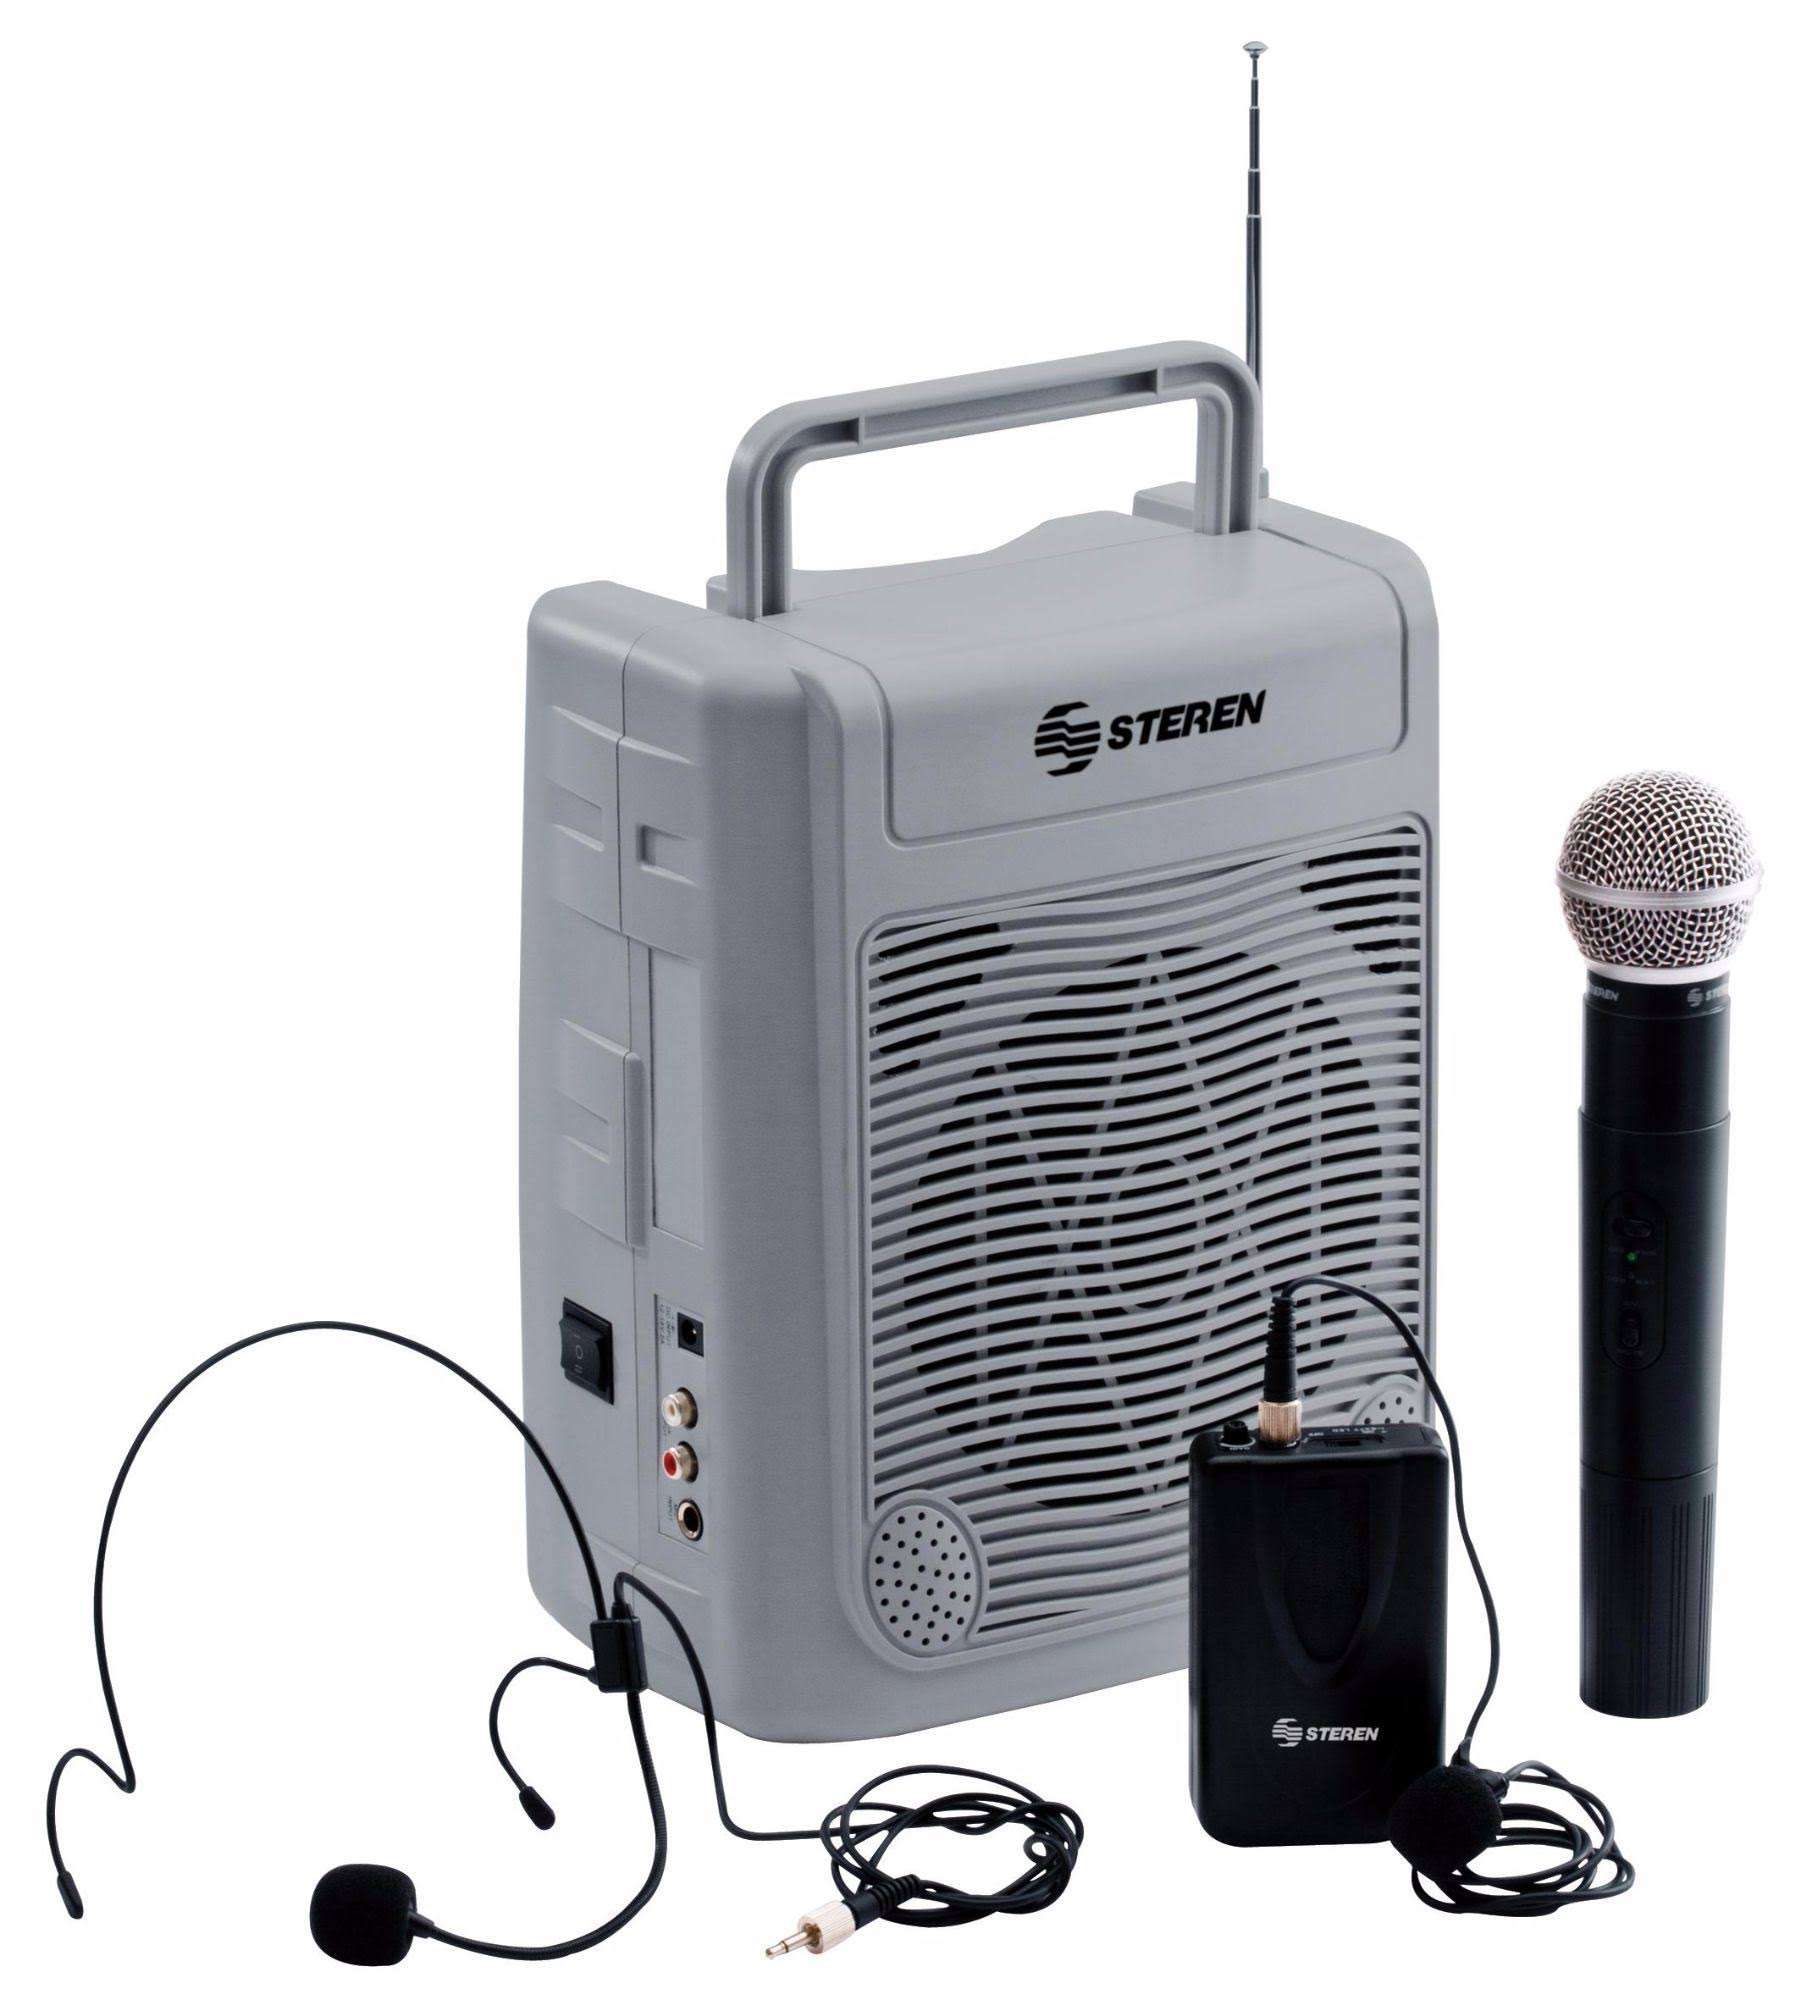 Steren 50 W Portable Amplifier with USB, SD Reader, Handheld, Lapel Microphones